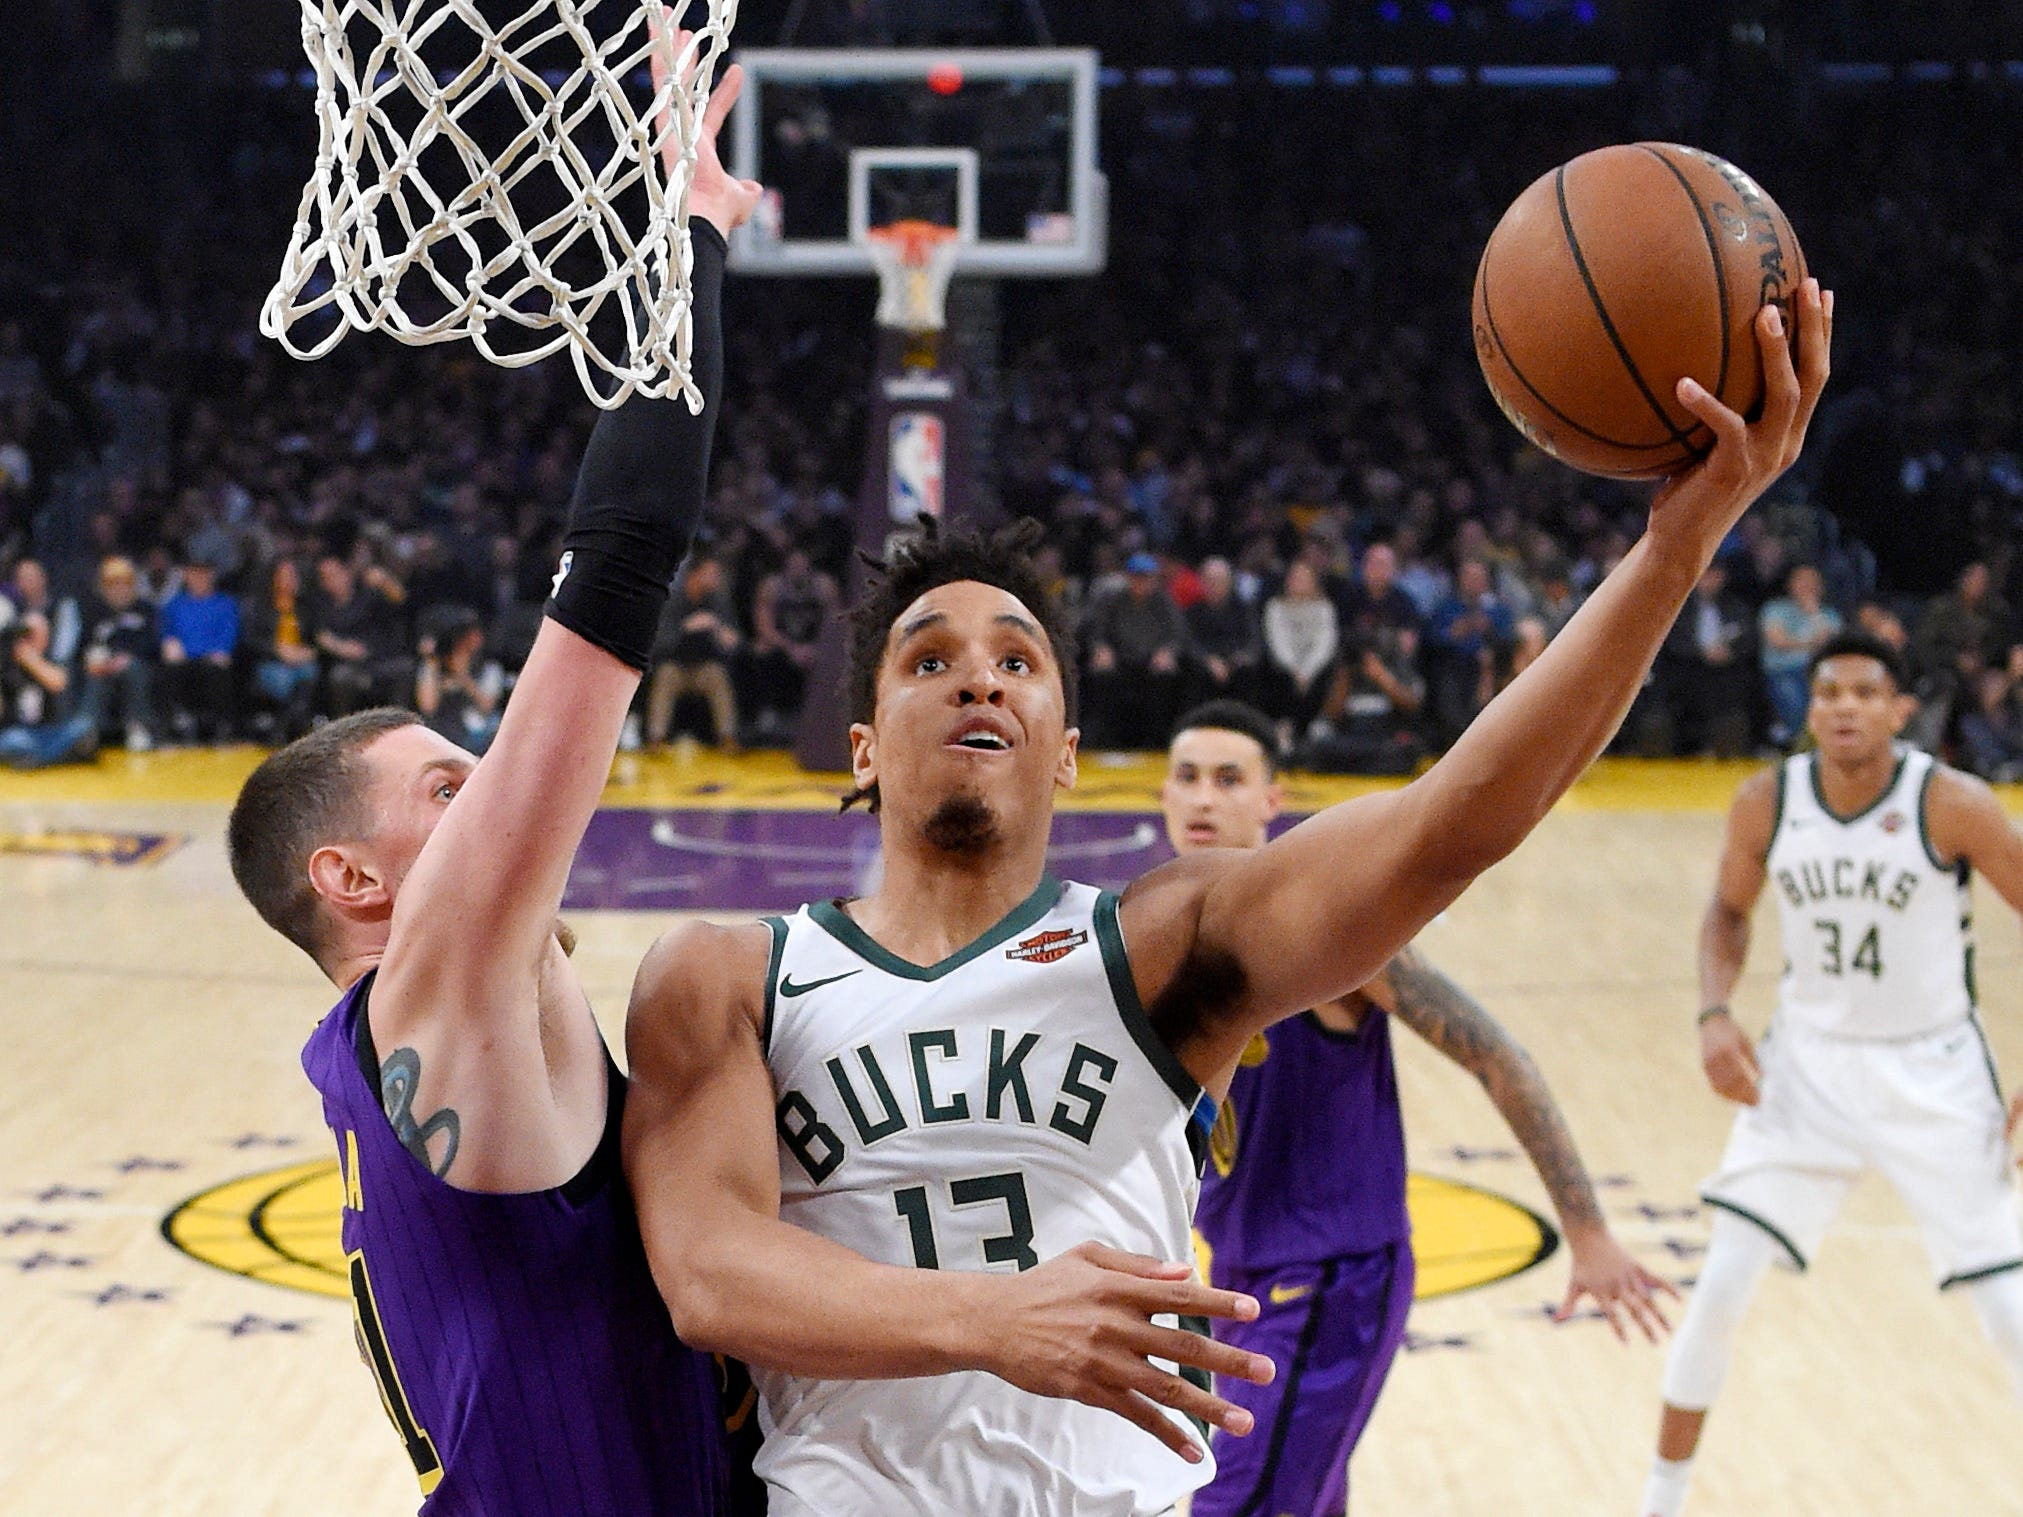 Bucks guard Malcolm Brogdon goes in for a layup against Lakers forward Mike Muscala during the first half Friday. Brogdon finished with 21 points.